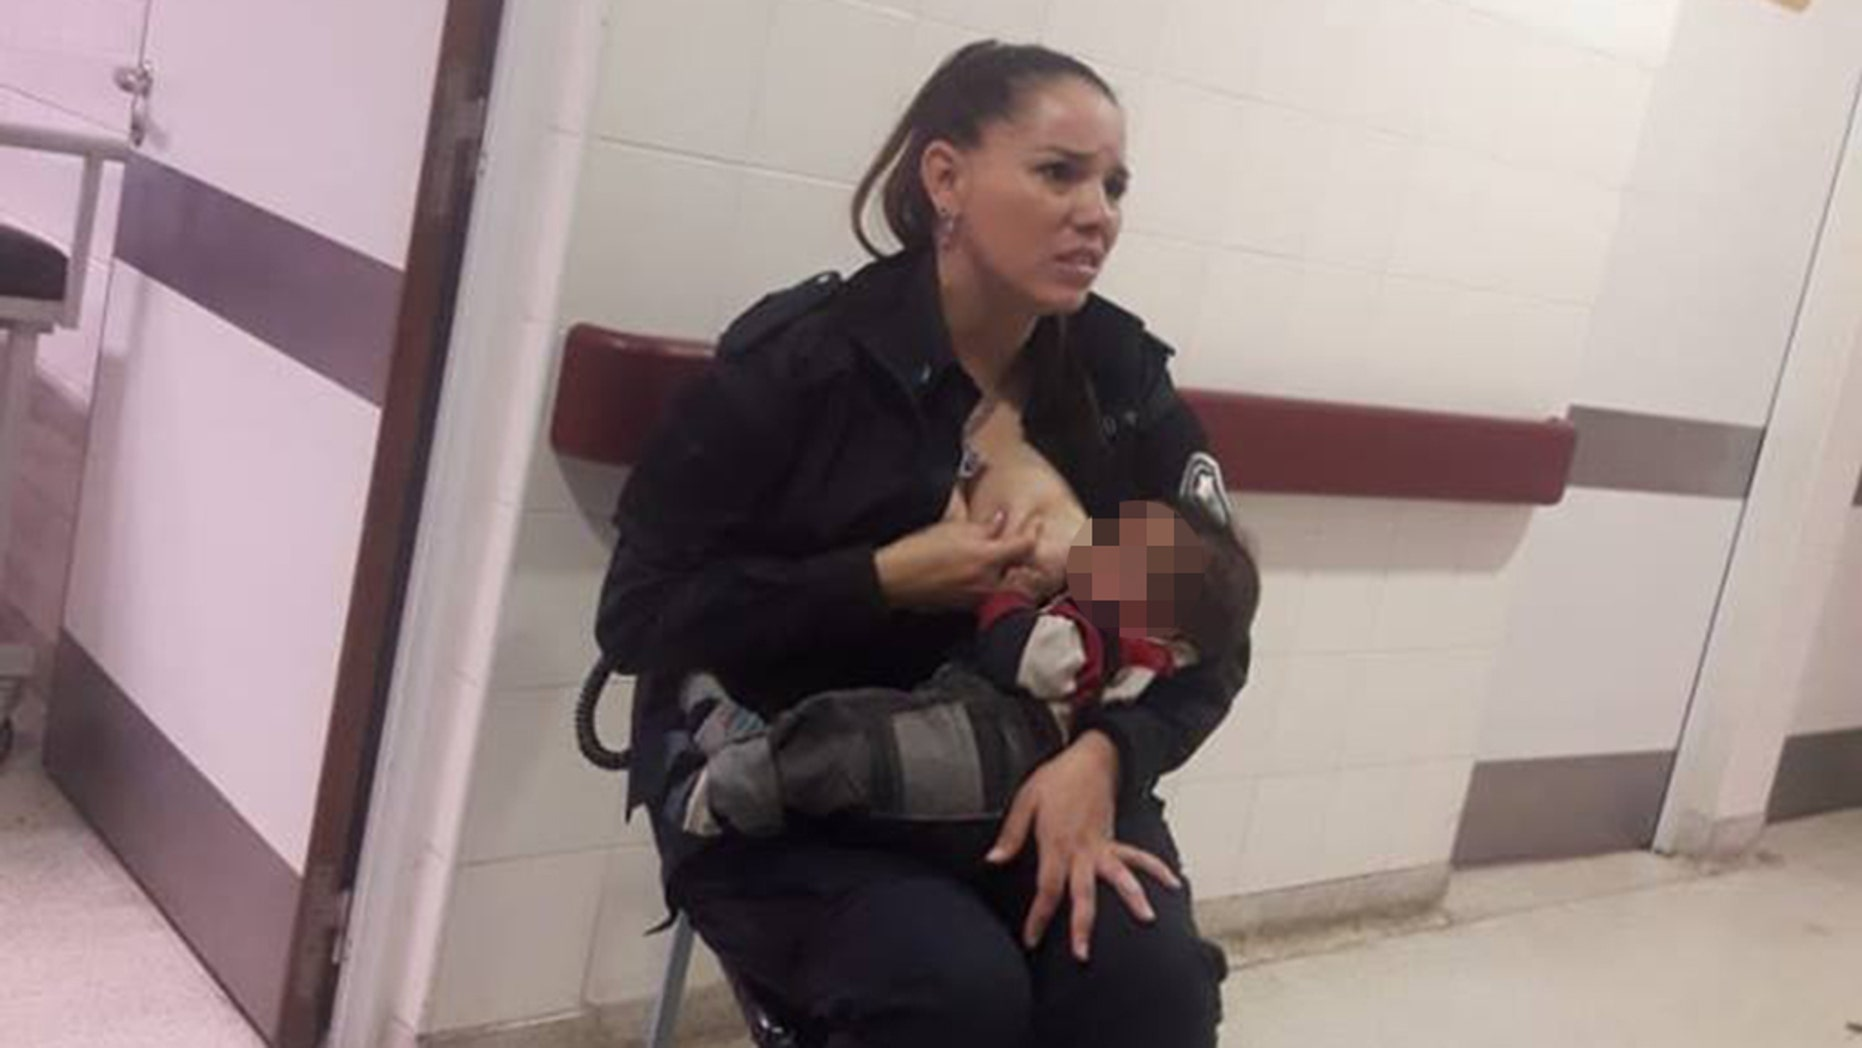 Celeste Ayala was captured breastfeeding a malnourished child.